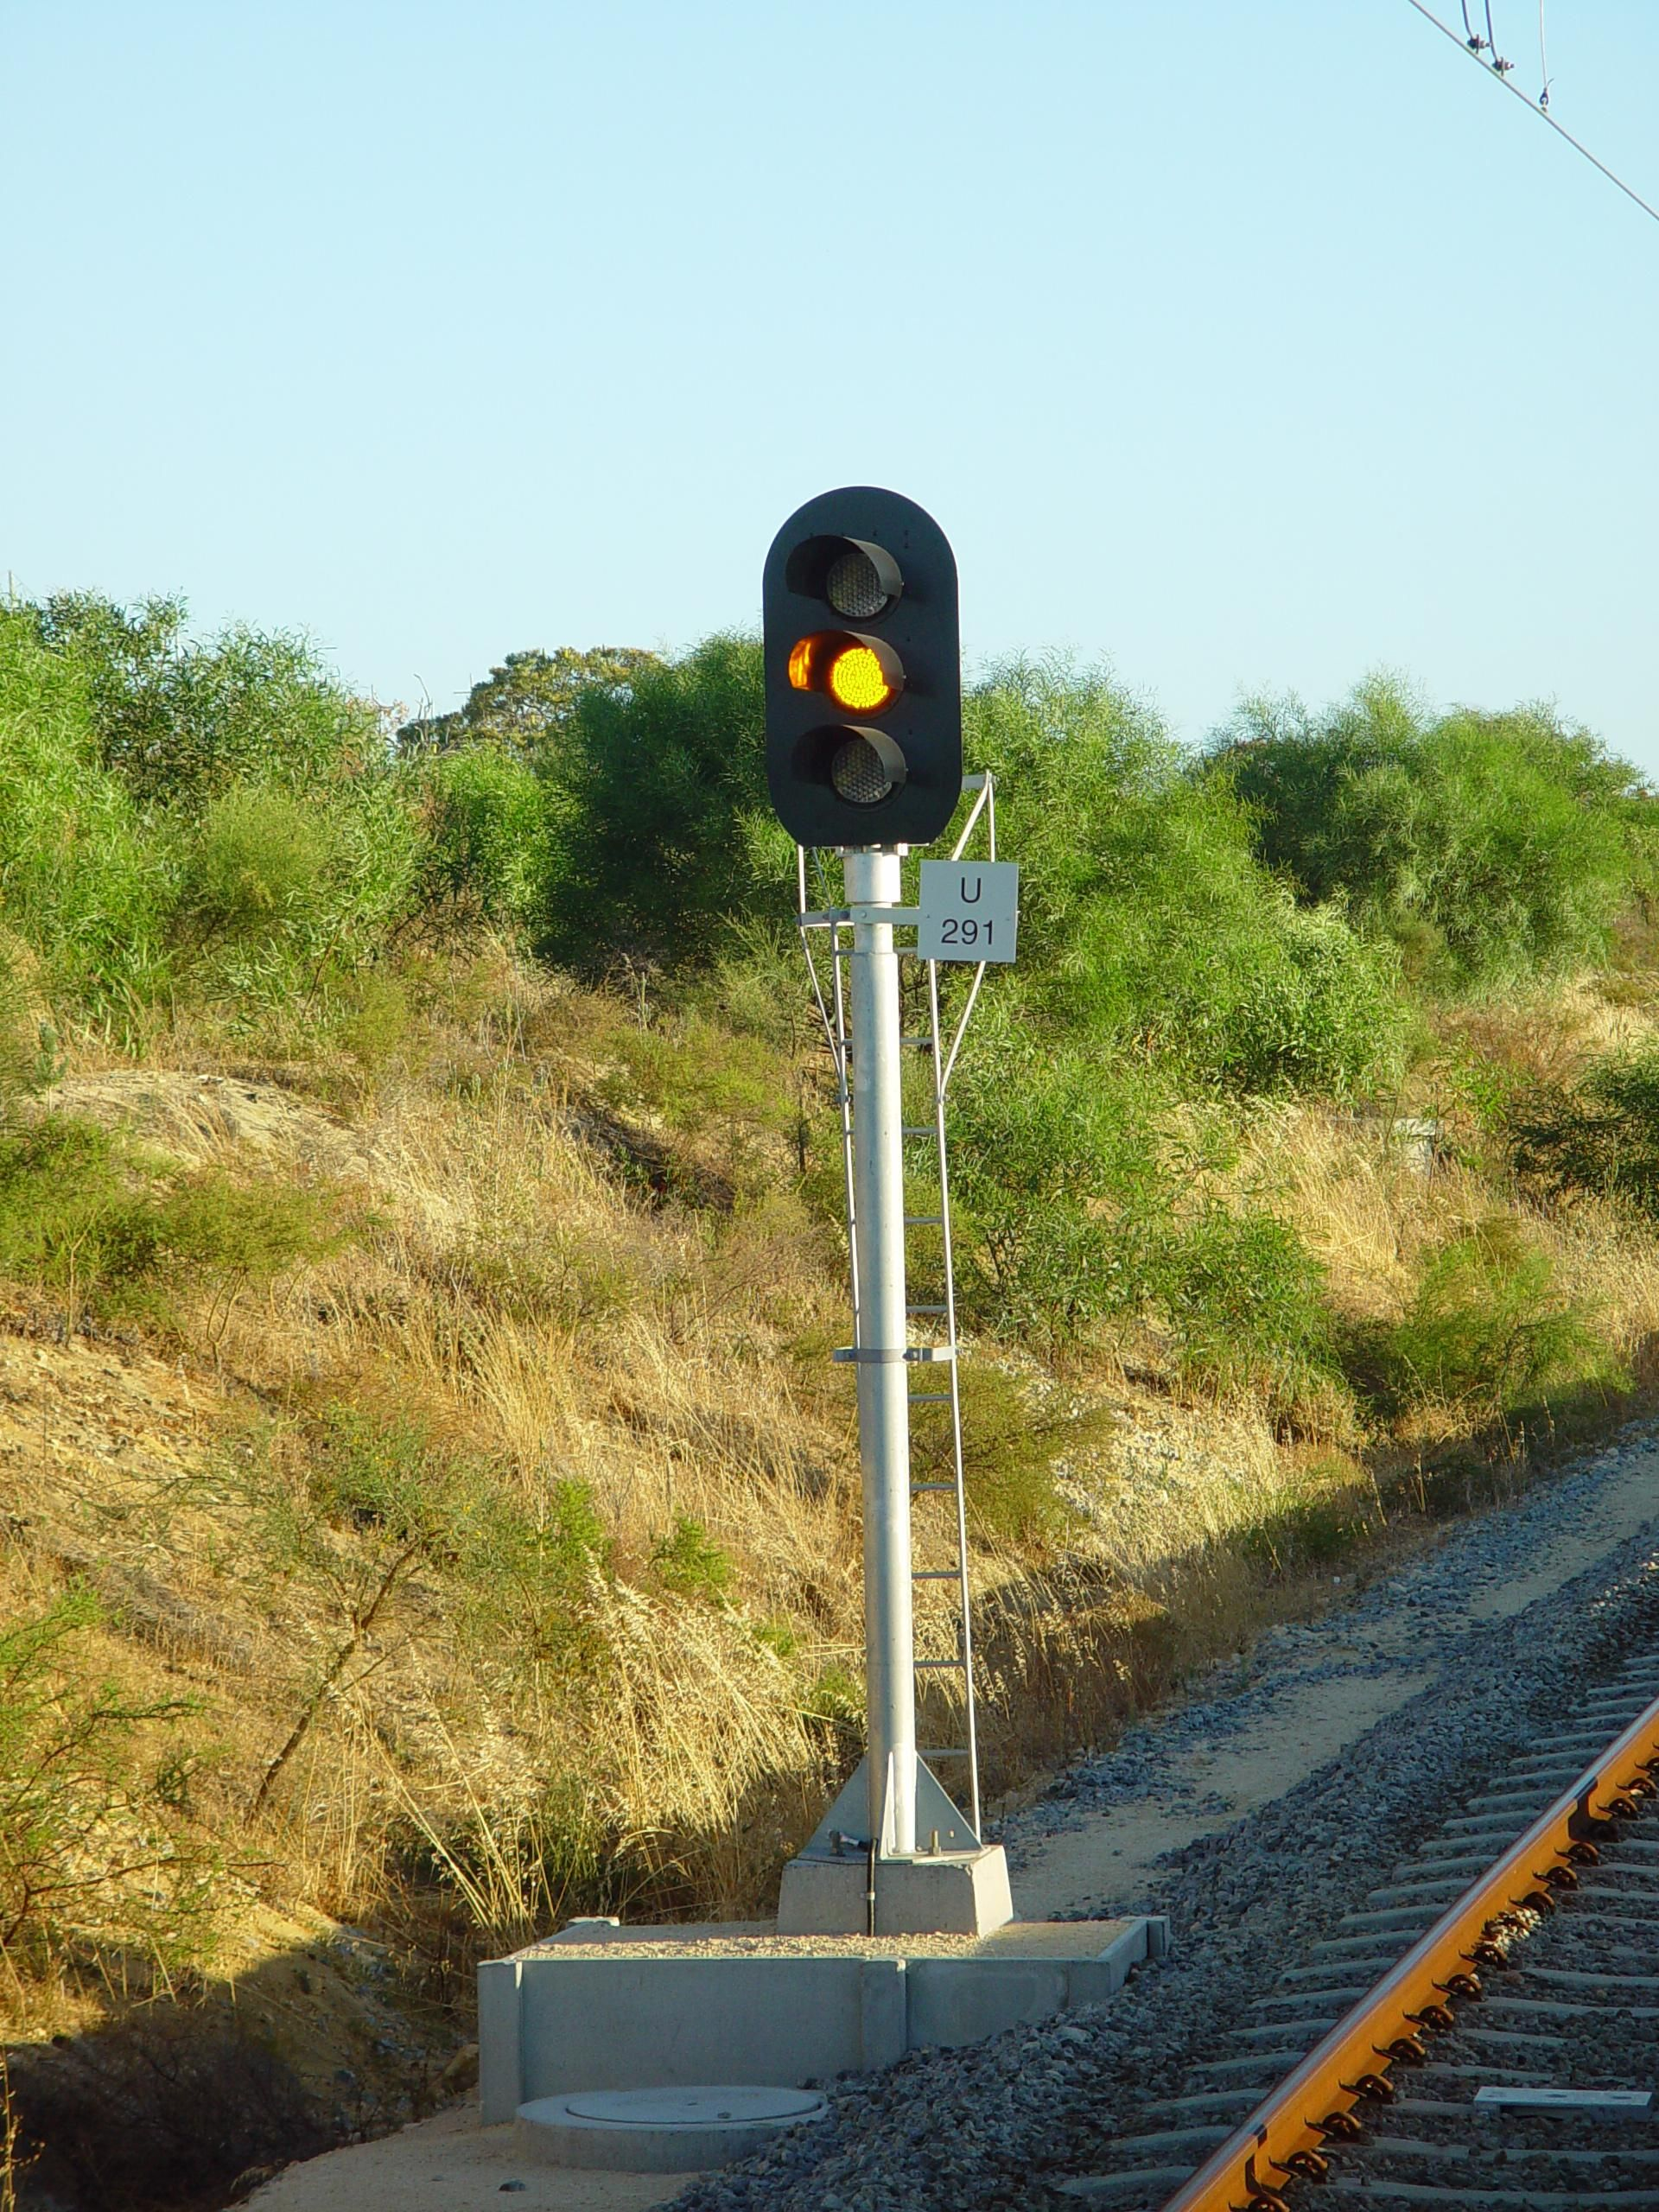 Free picture: railway, signal, currambine, amber